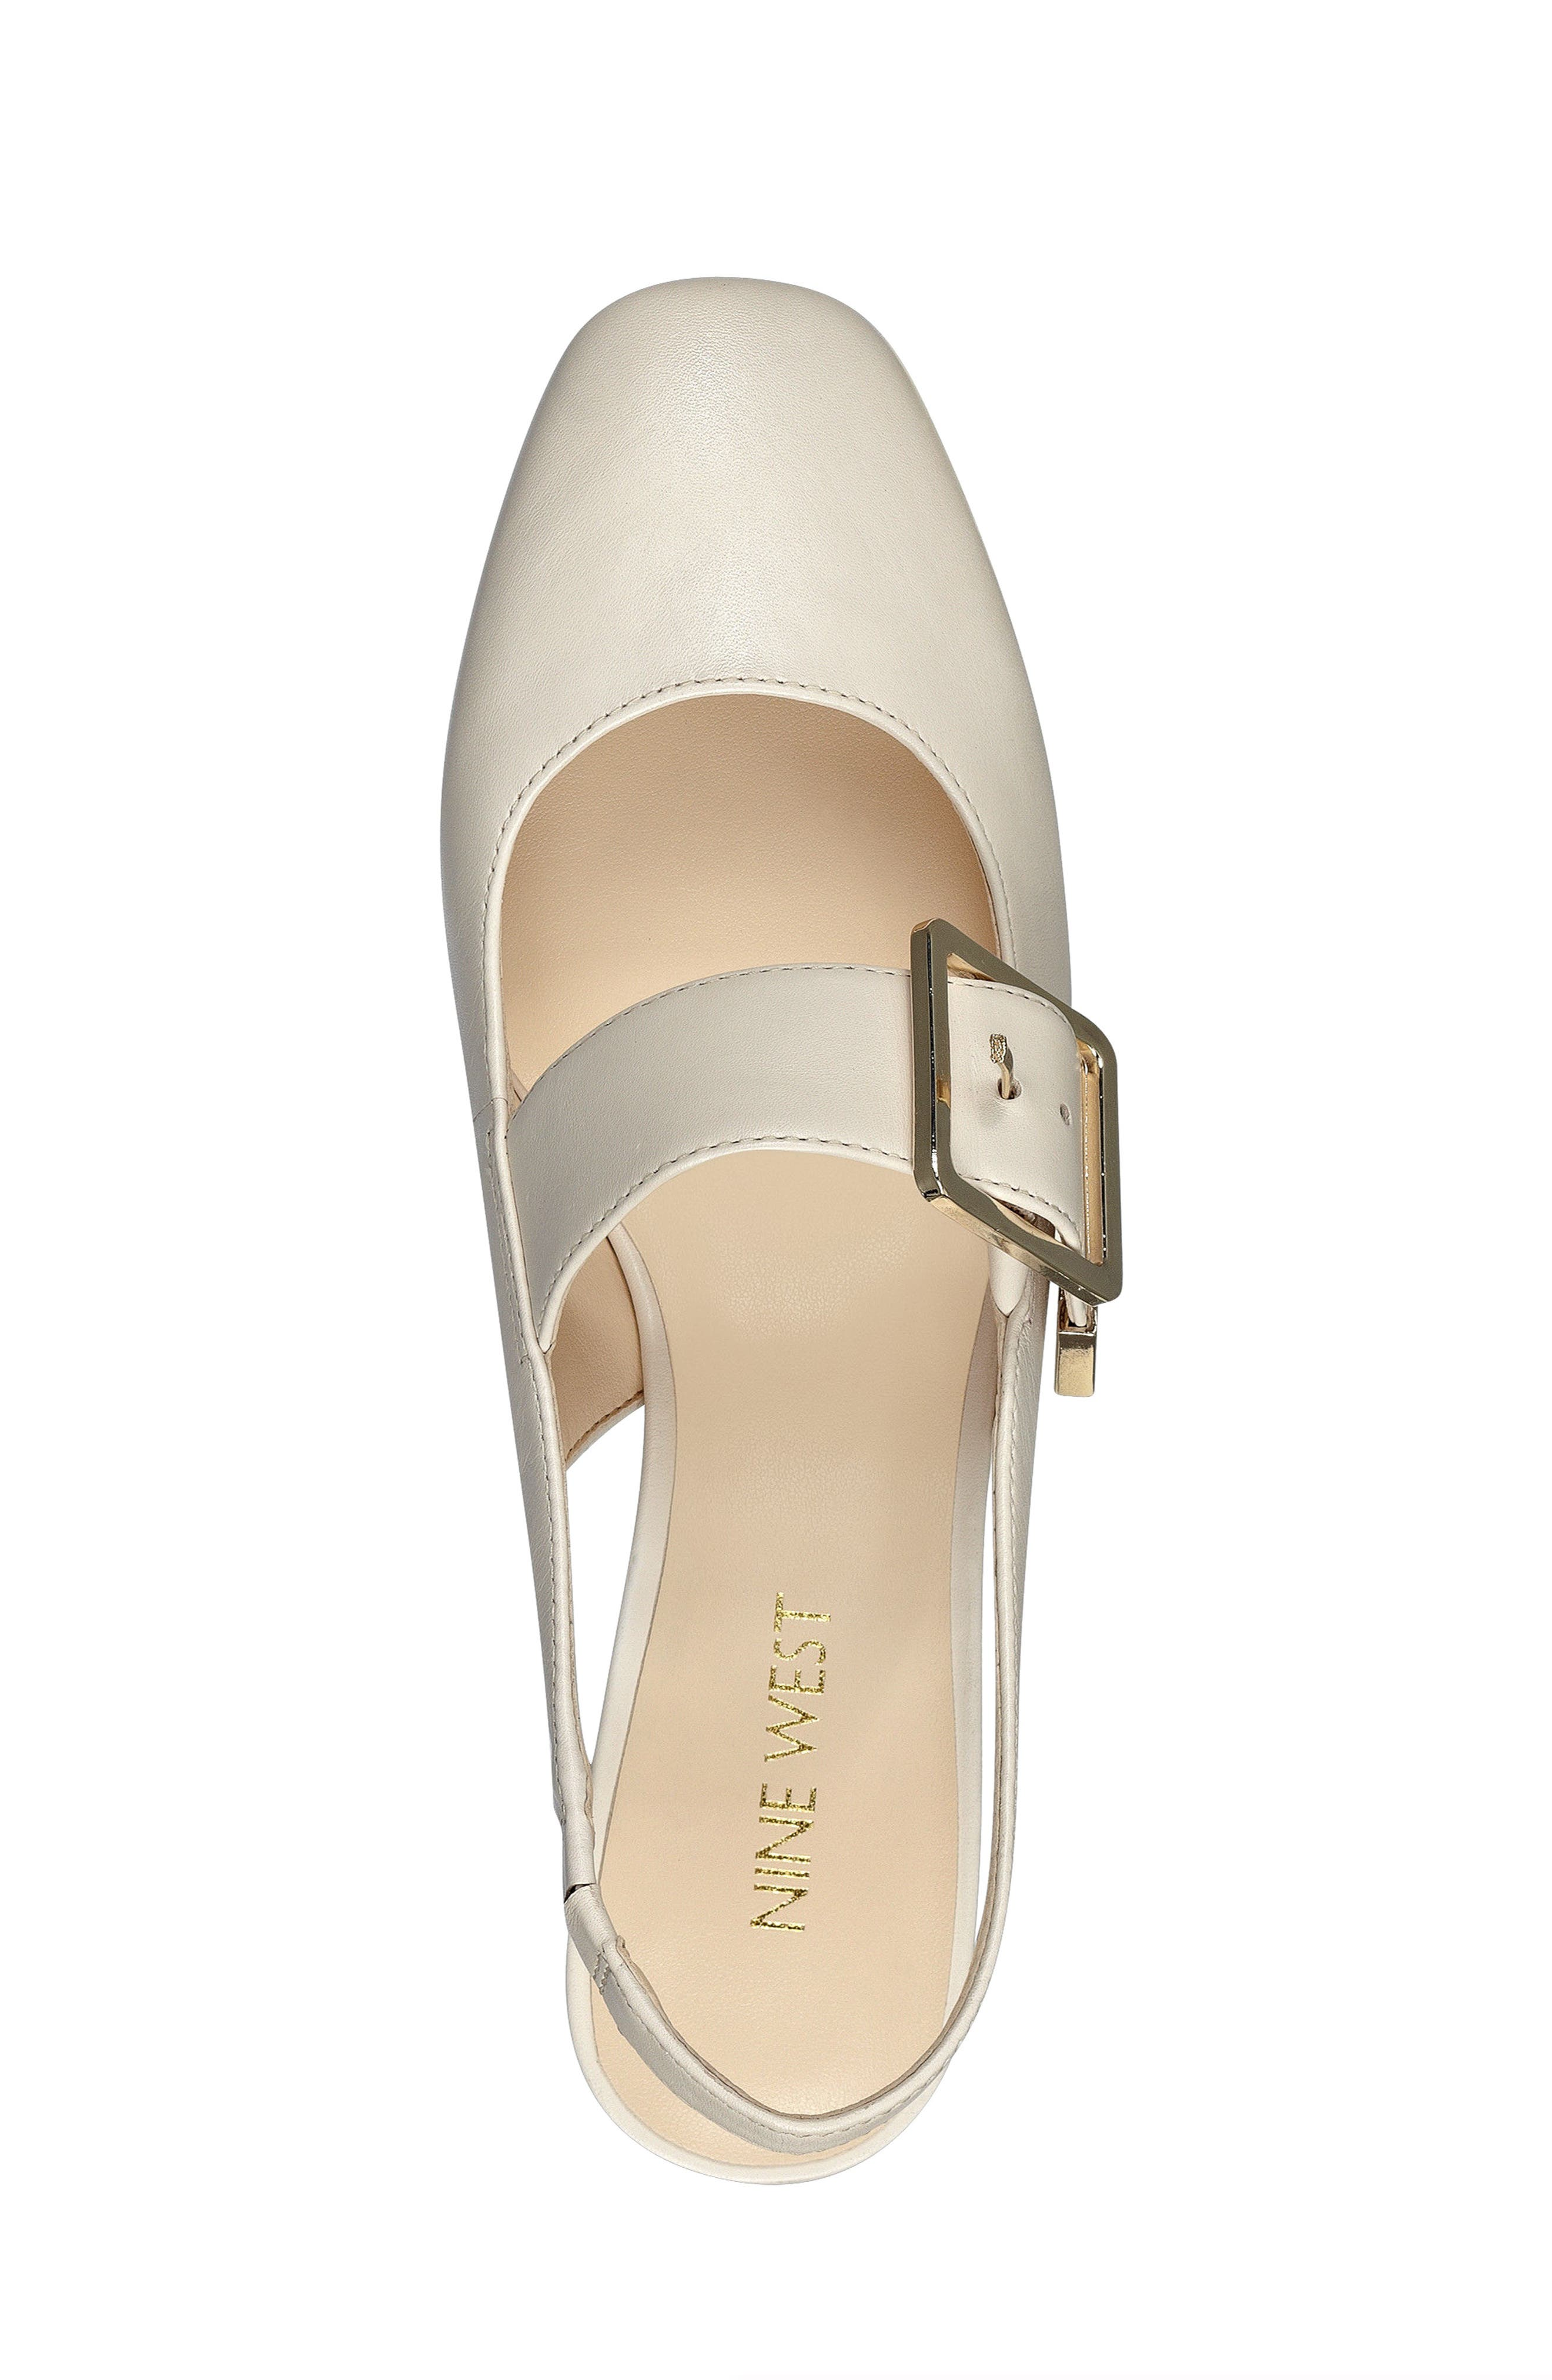 Wendor Slingback Pump,                             Alternate thumbnail 5, color,                             Off White Leather